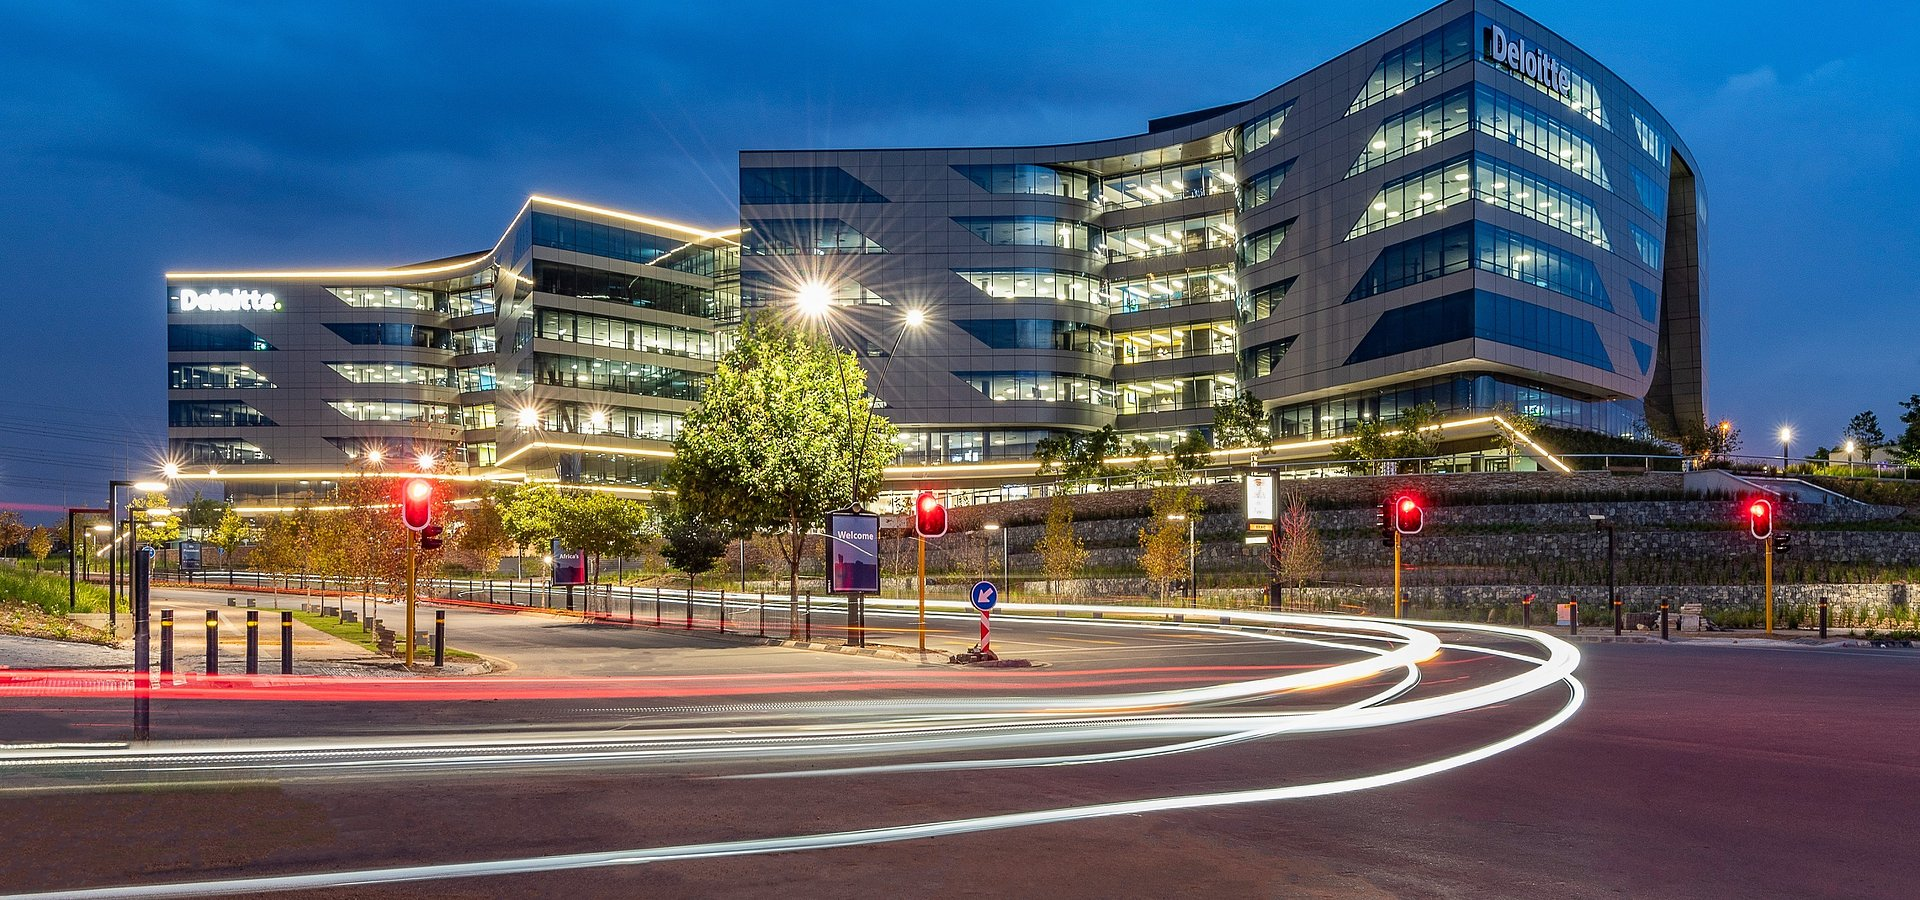 Atterbury to sell its 50% stake in Deloitte's African HQ building in Waterfall